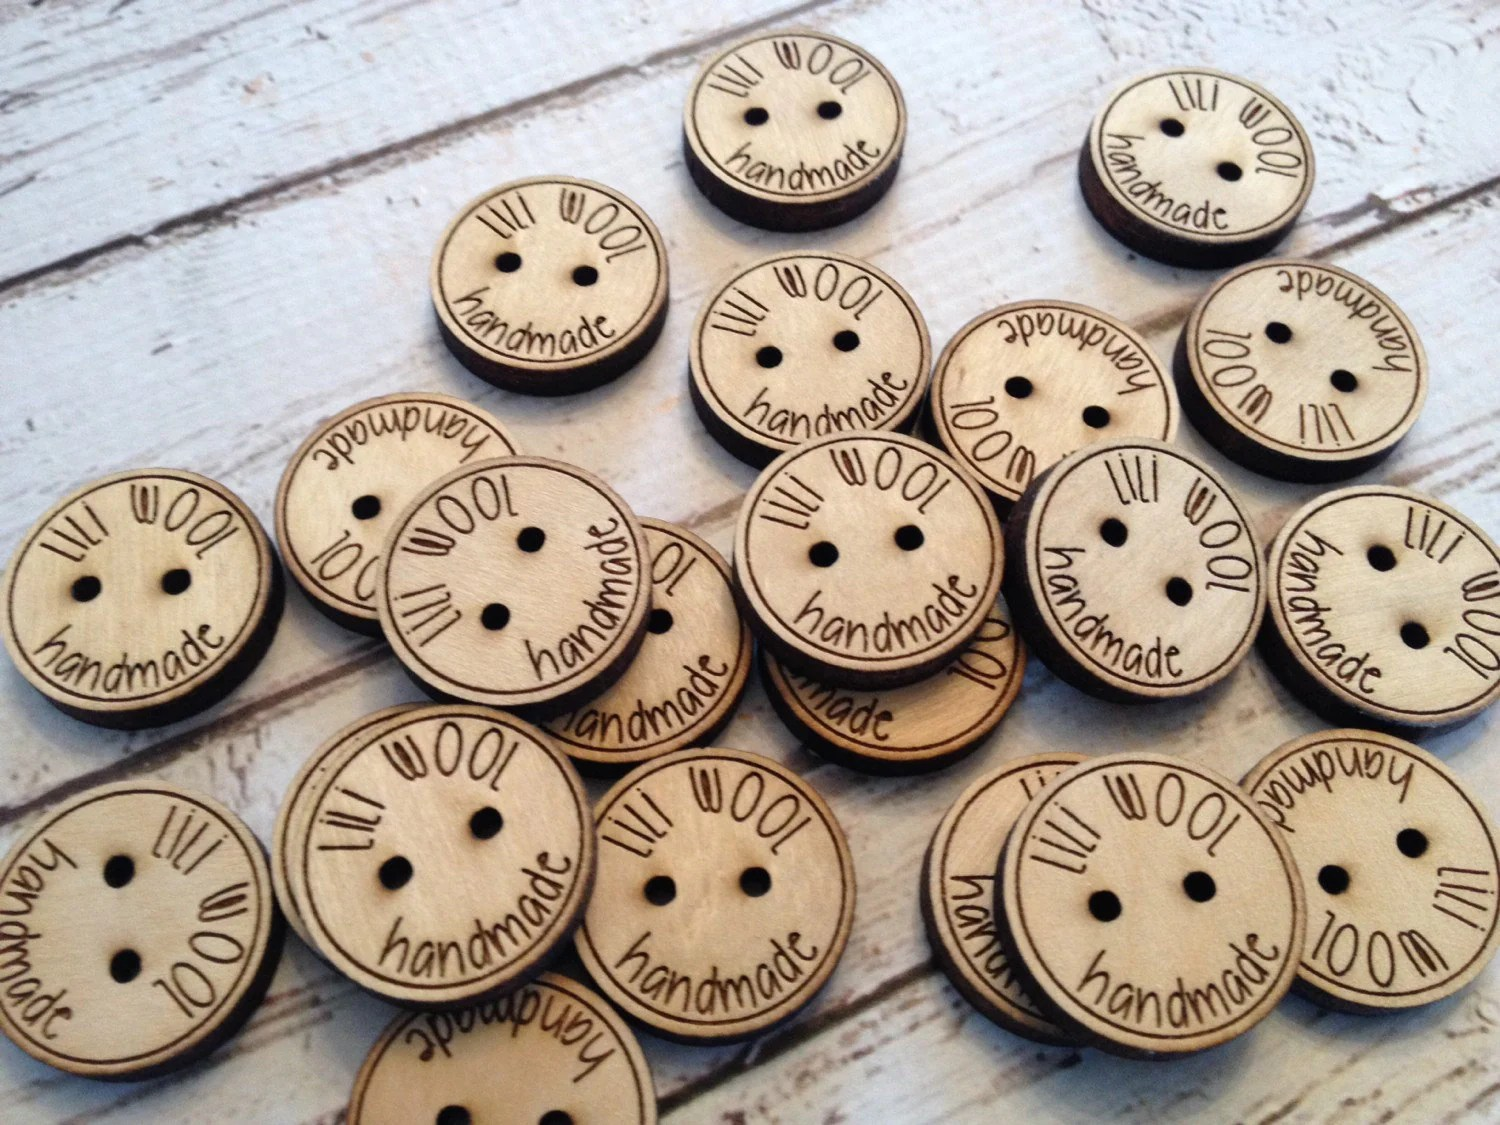 Custom button design  personalized wood button engraved image 3